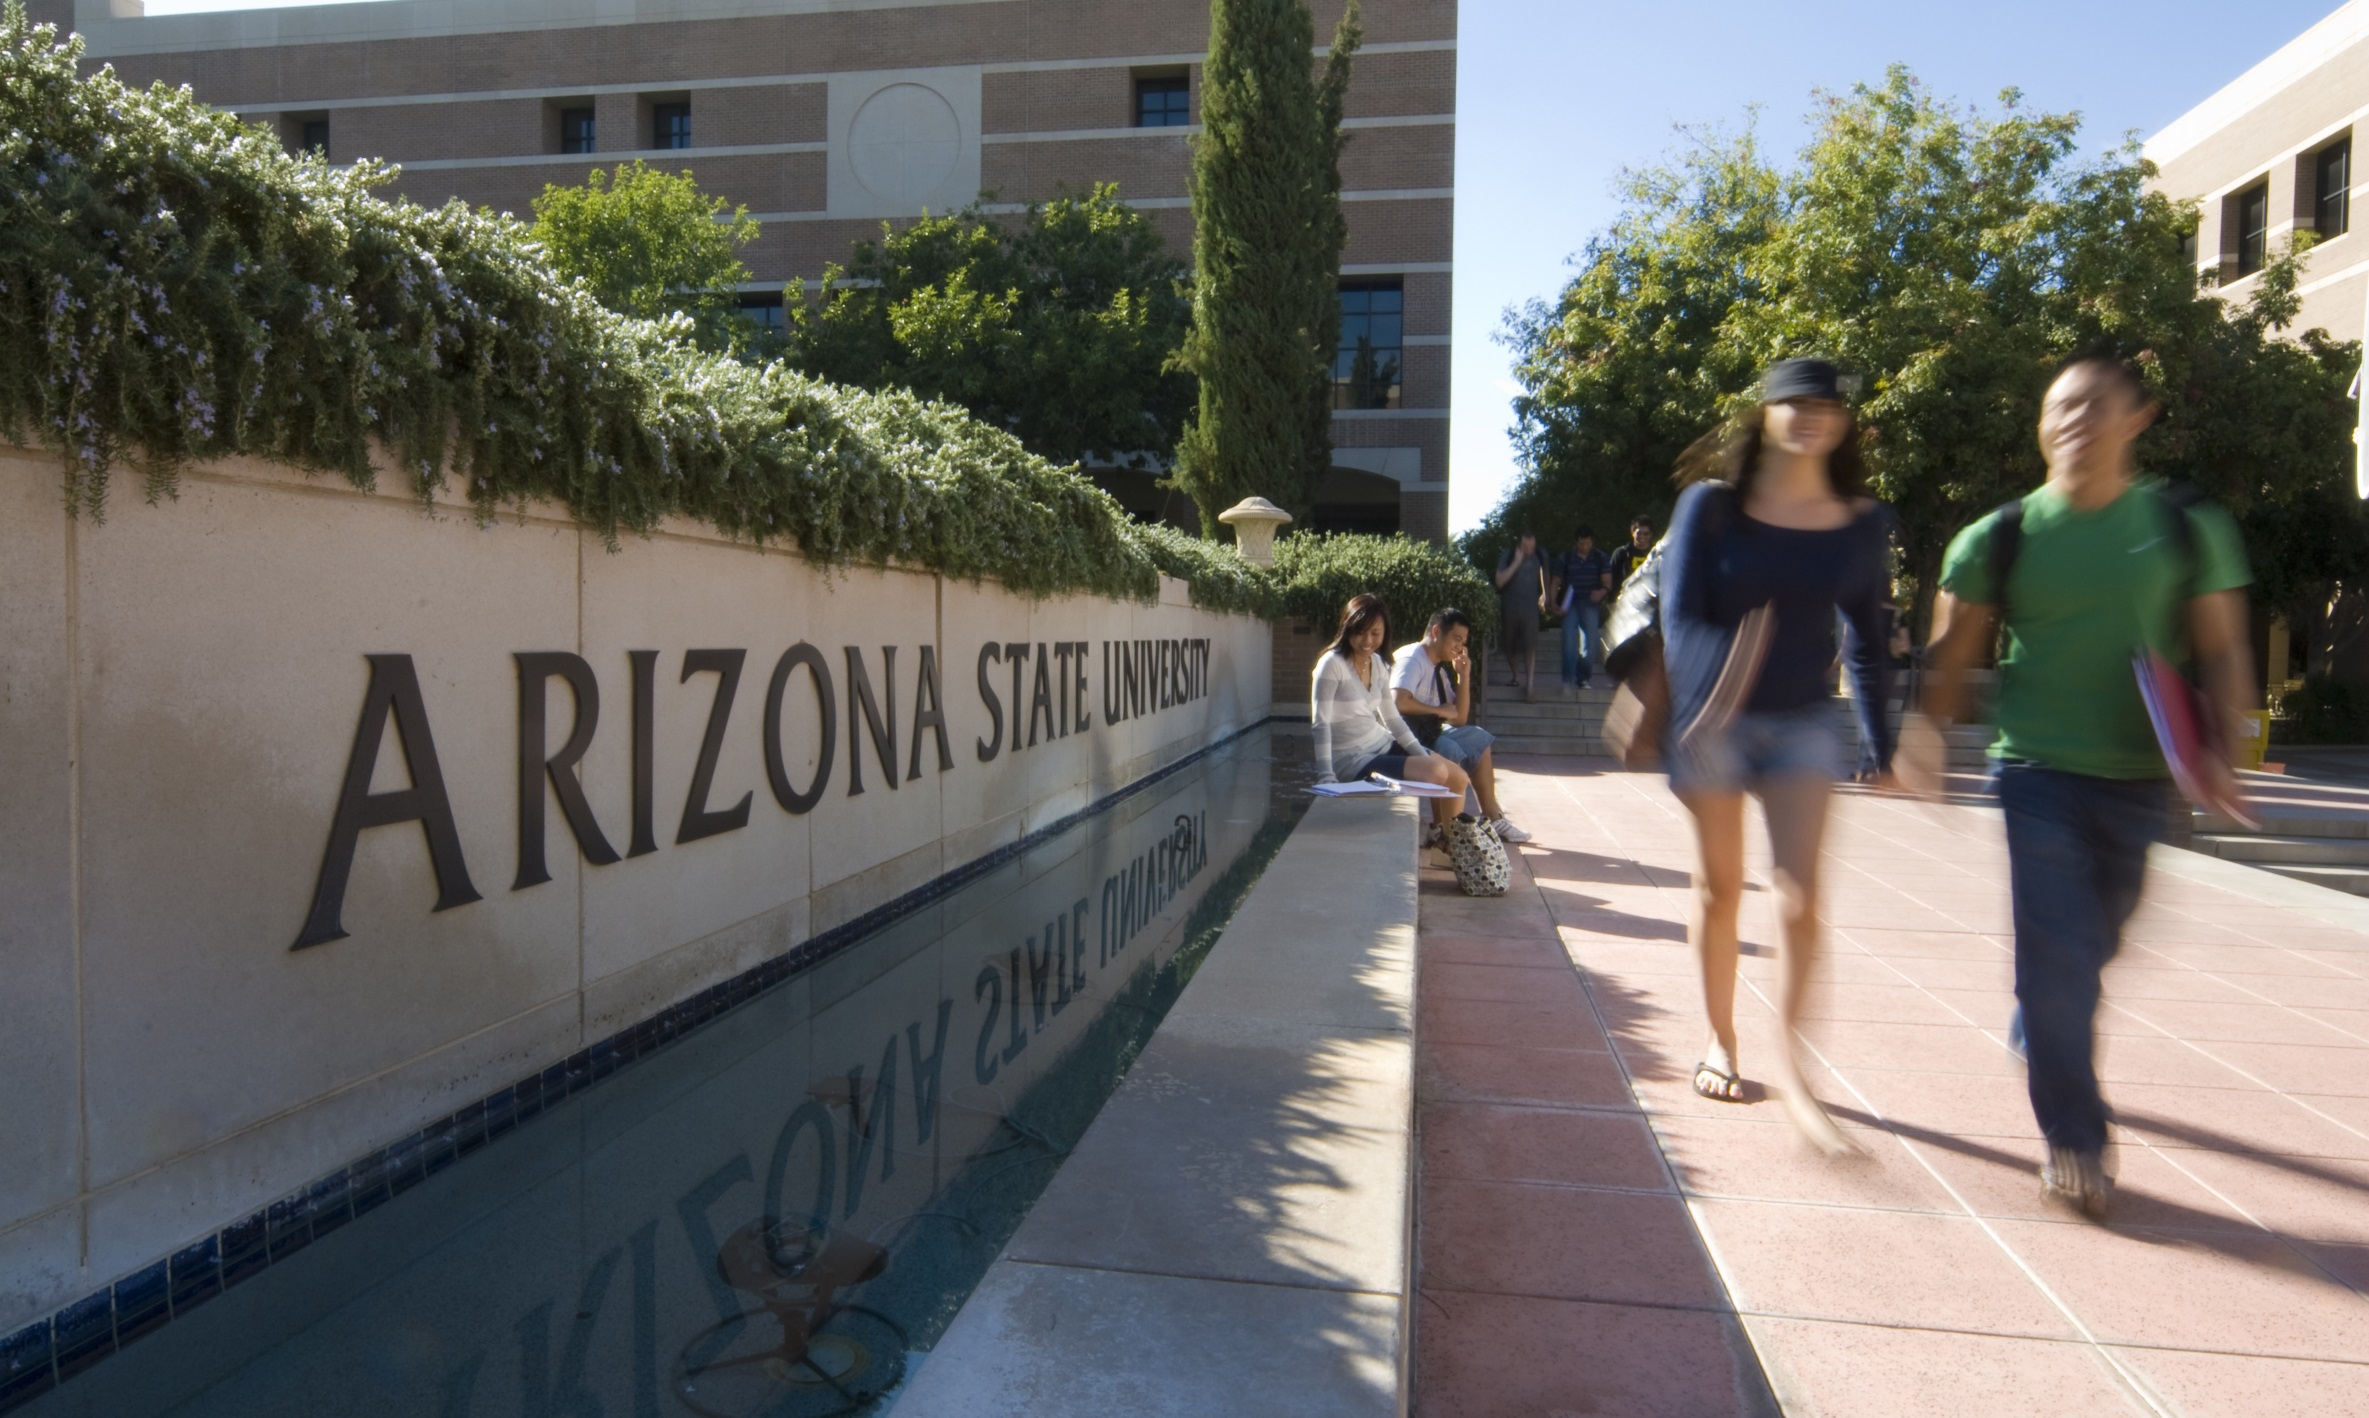 The University of Arizona, Tucson, Arizona